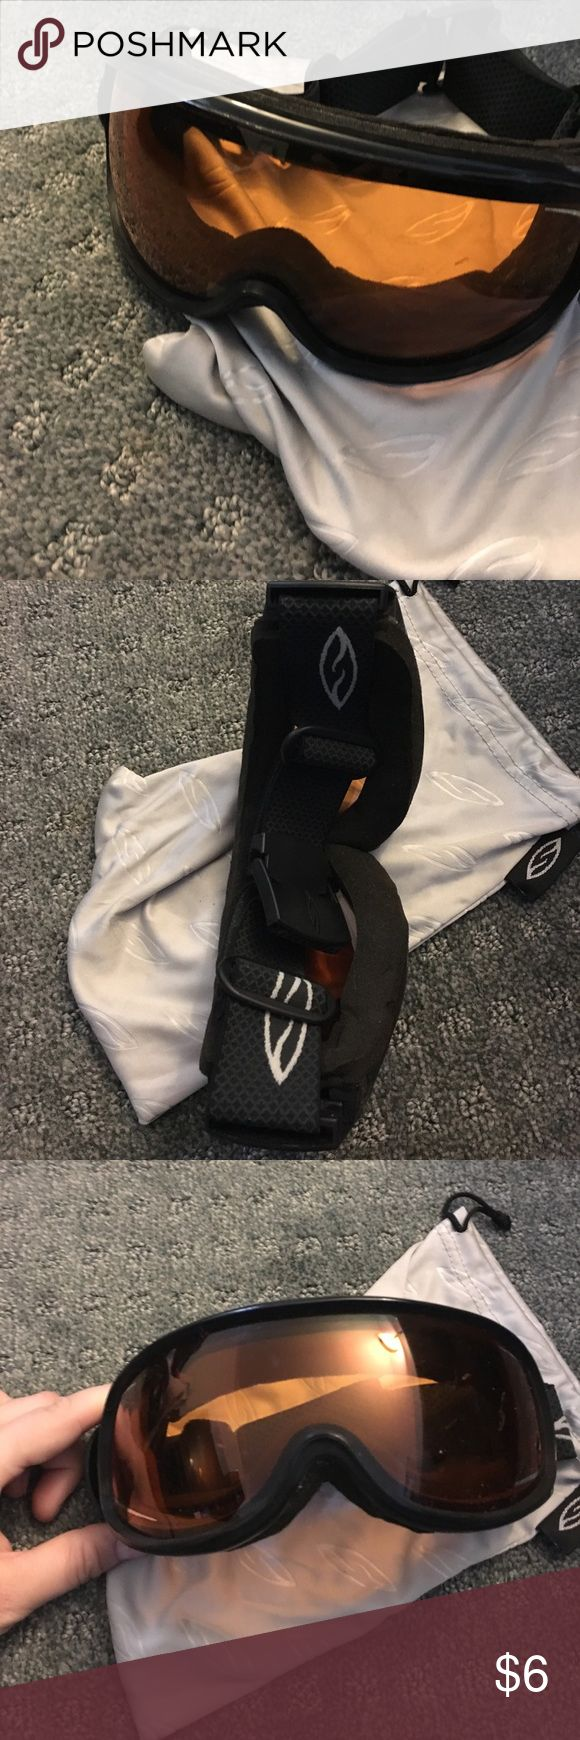 Smith goggles Smith goggles in great condition. Orange lenses with dust bag SMITH Accessories